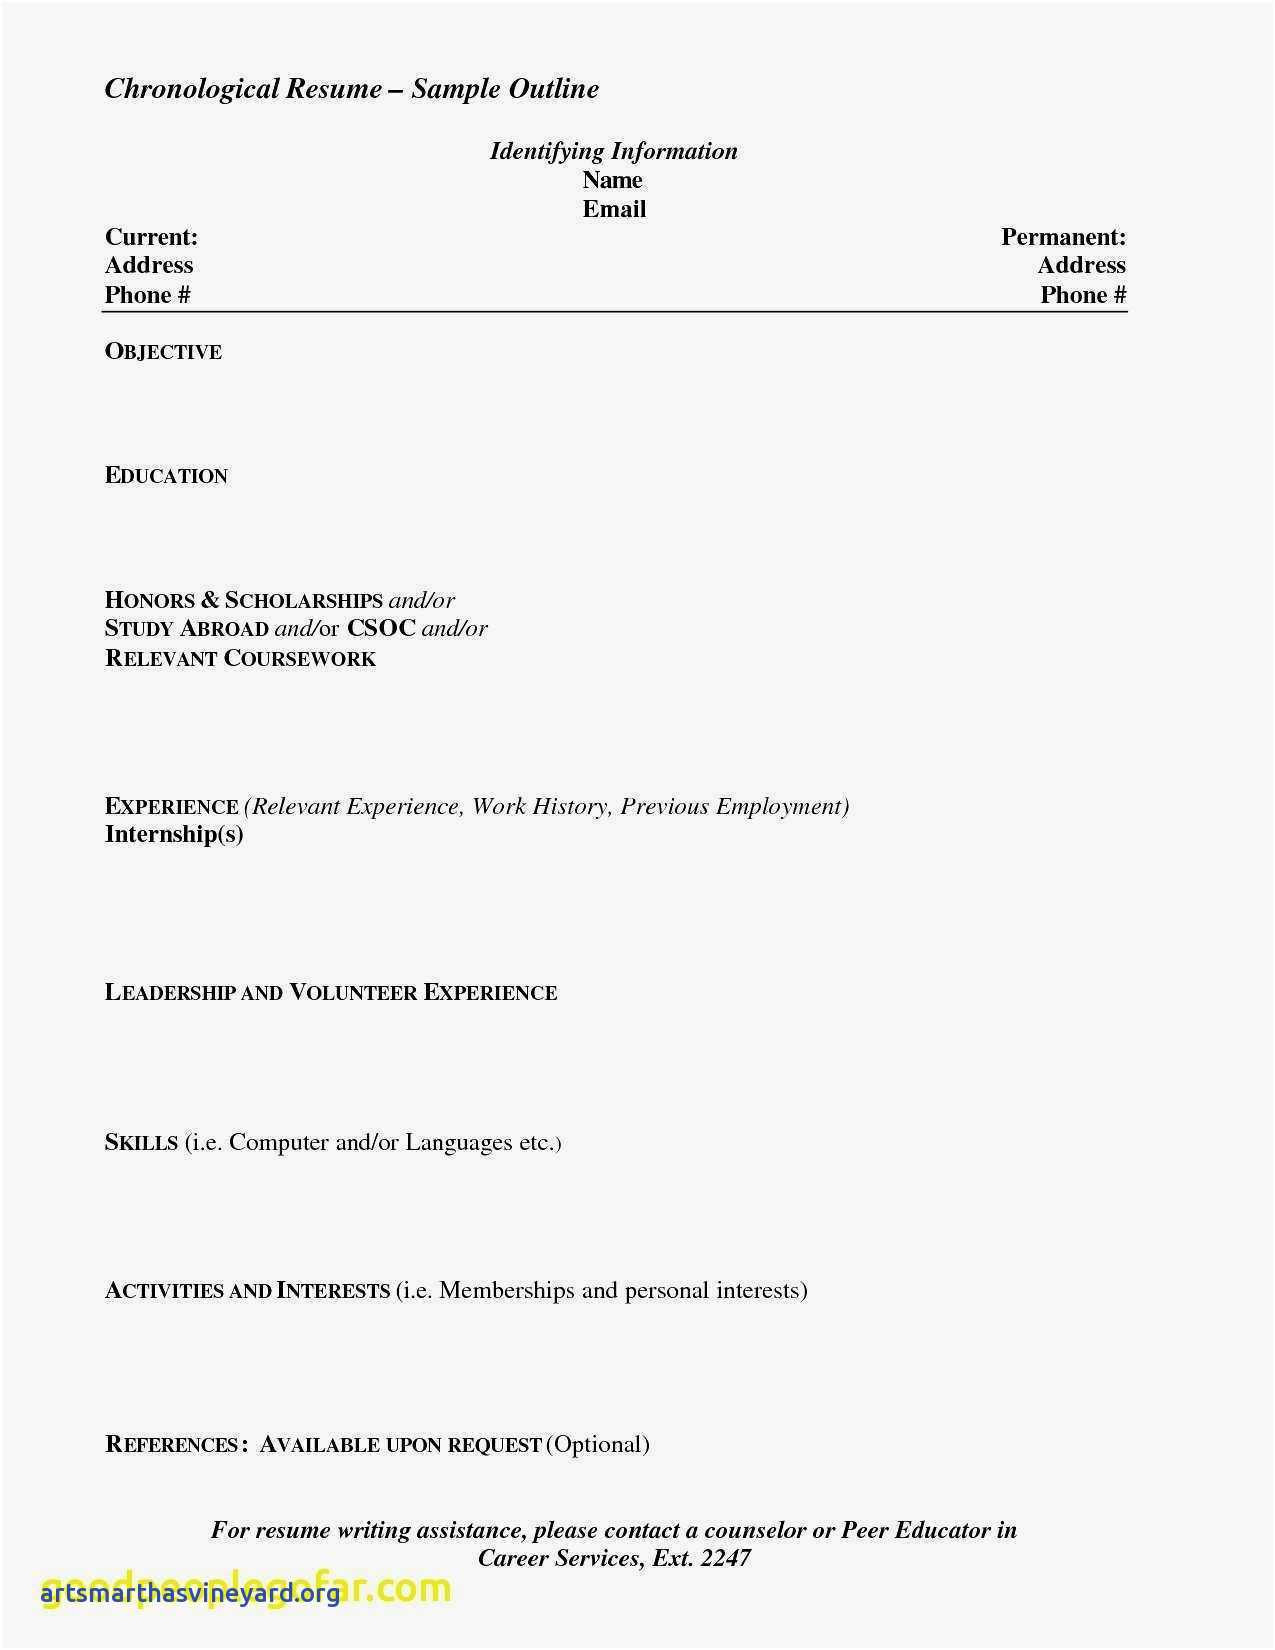 Career Fair Resume Template - Resume Templates High School Students No Experience Simple Unique